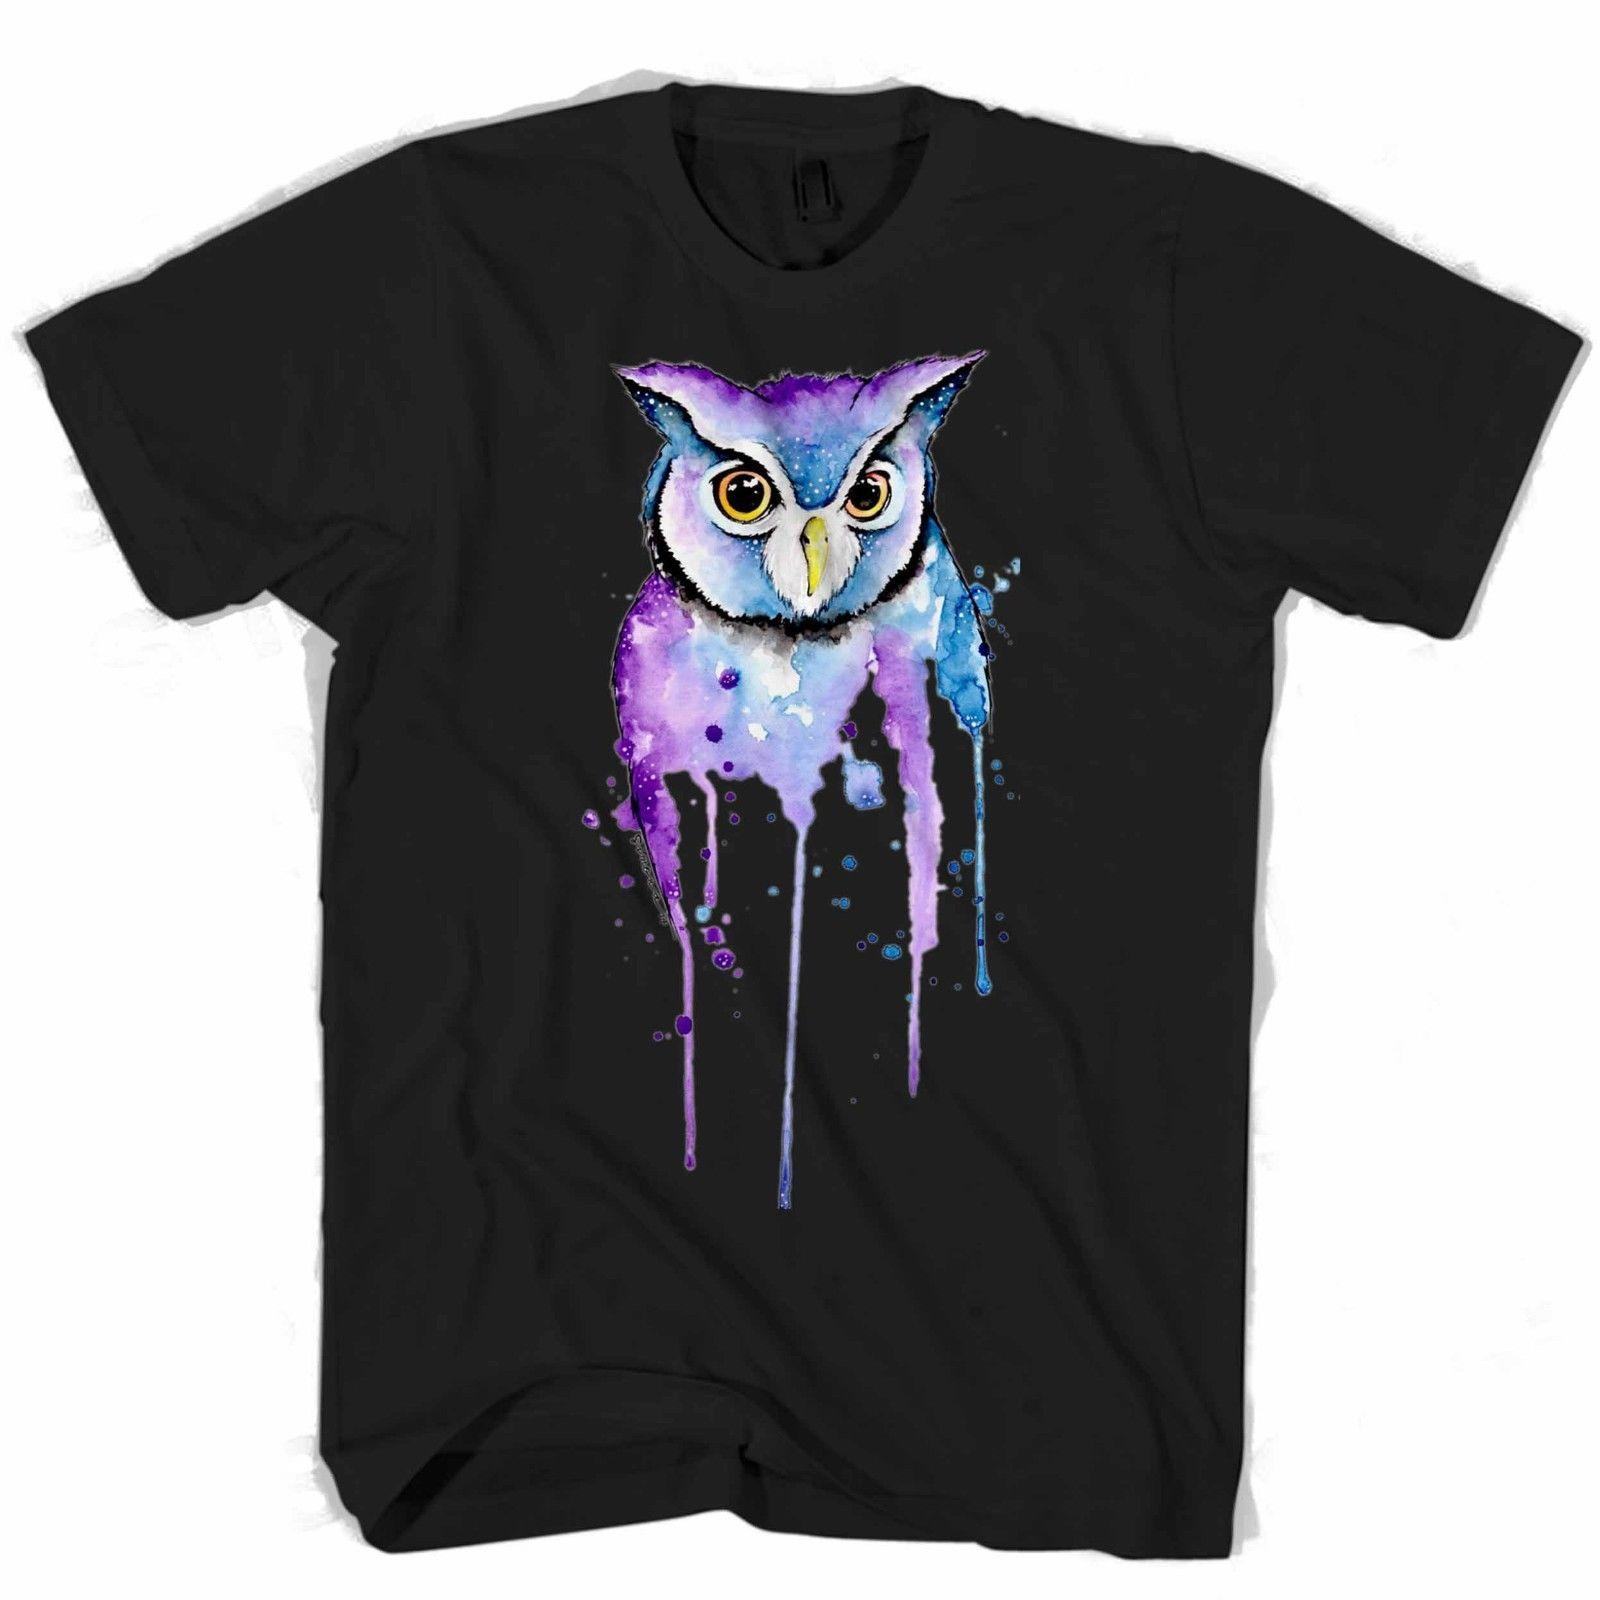 ab0e57fb Harry Potter Expecto Patronum Galaxy Men'S / Women'S T ShirtFunny Unisex  Casual Tshirt Top Tee Shirt Site Online Buy T Shirt From Sg_outlet, $12.96|  DHgate.